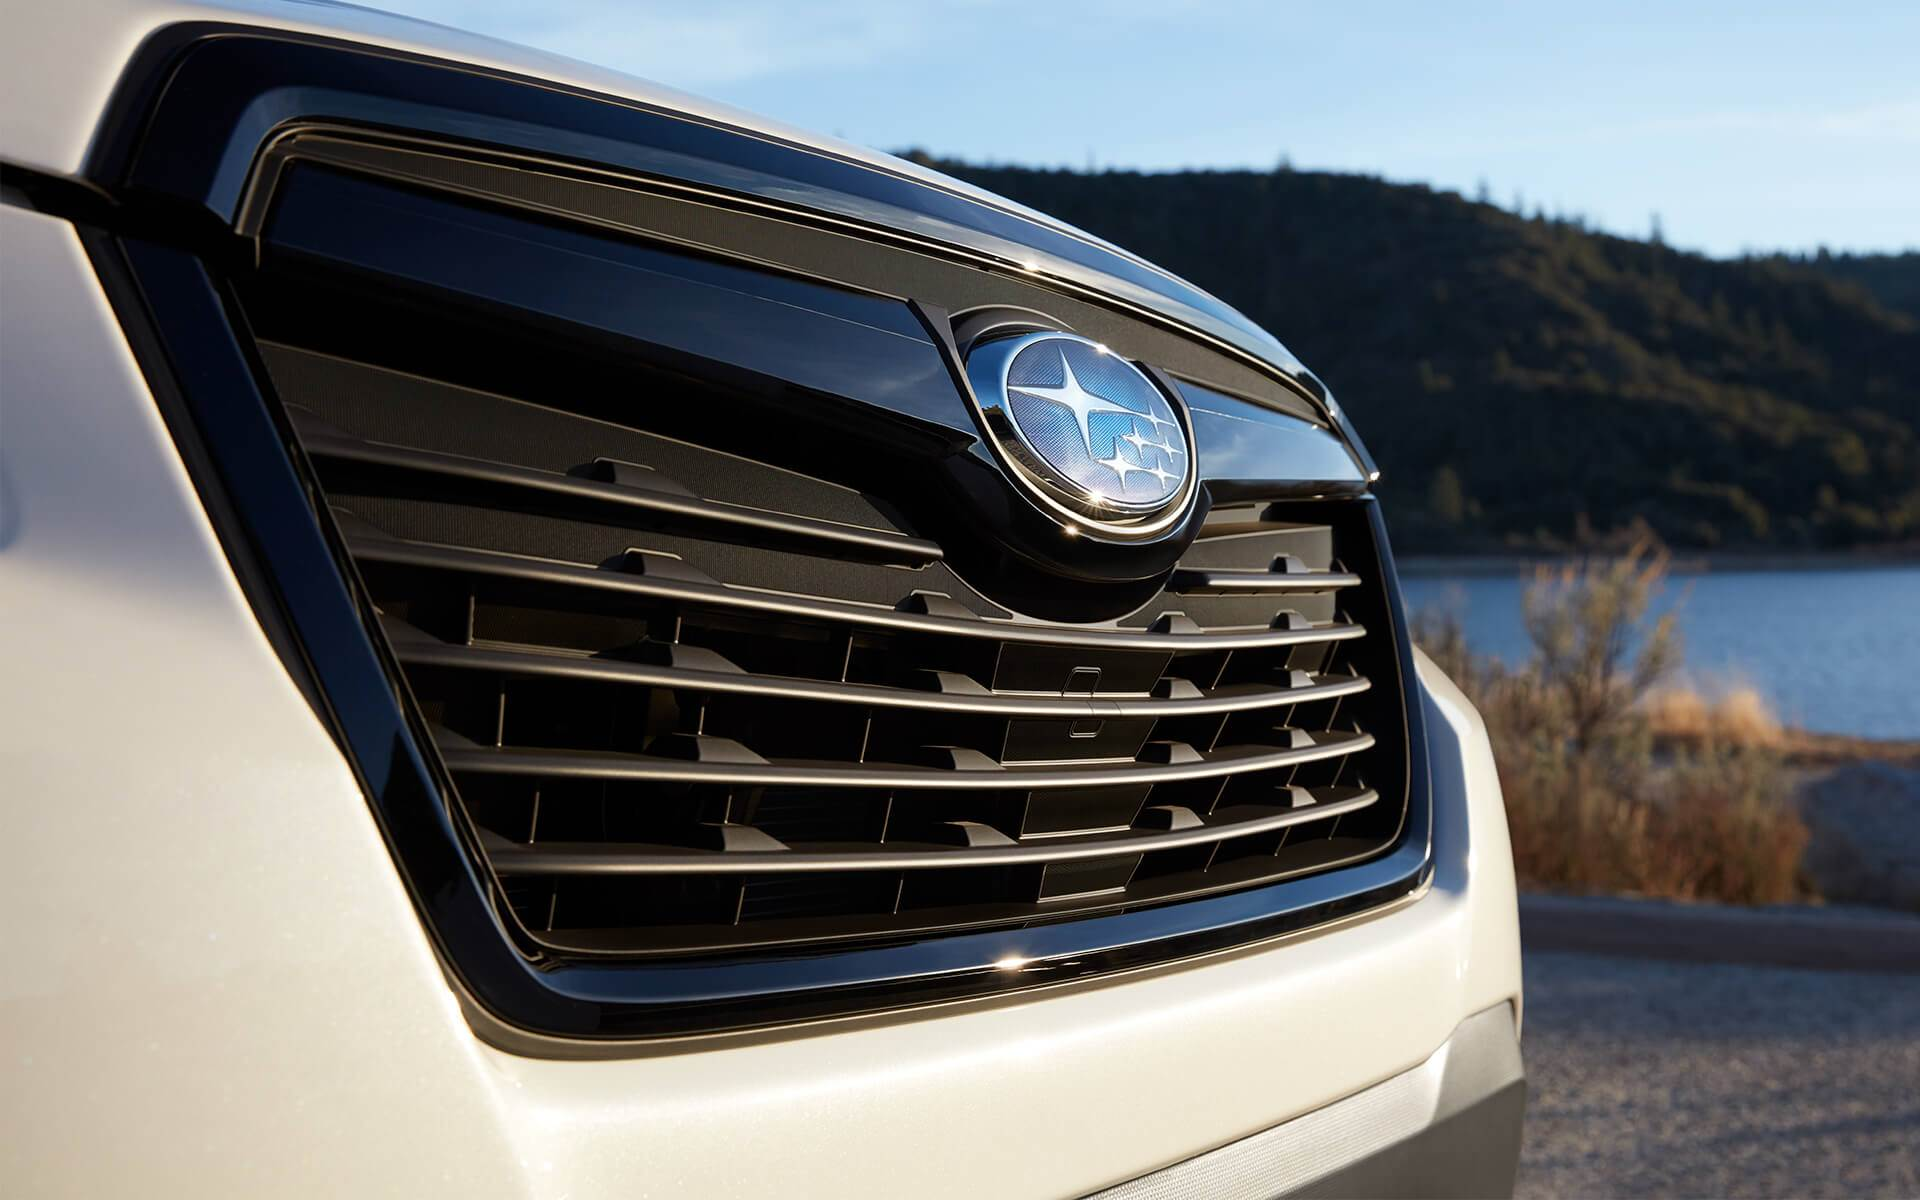 Subaru Image: Sport grille with gloss black accents